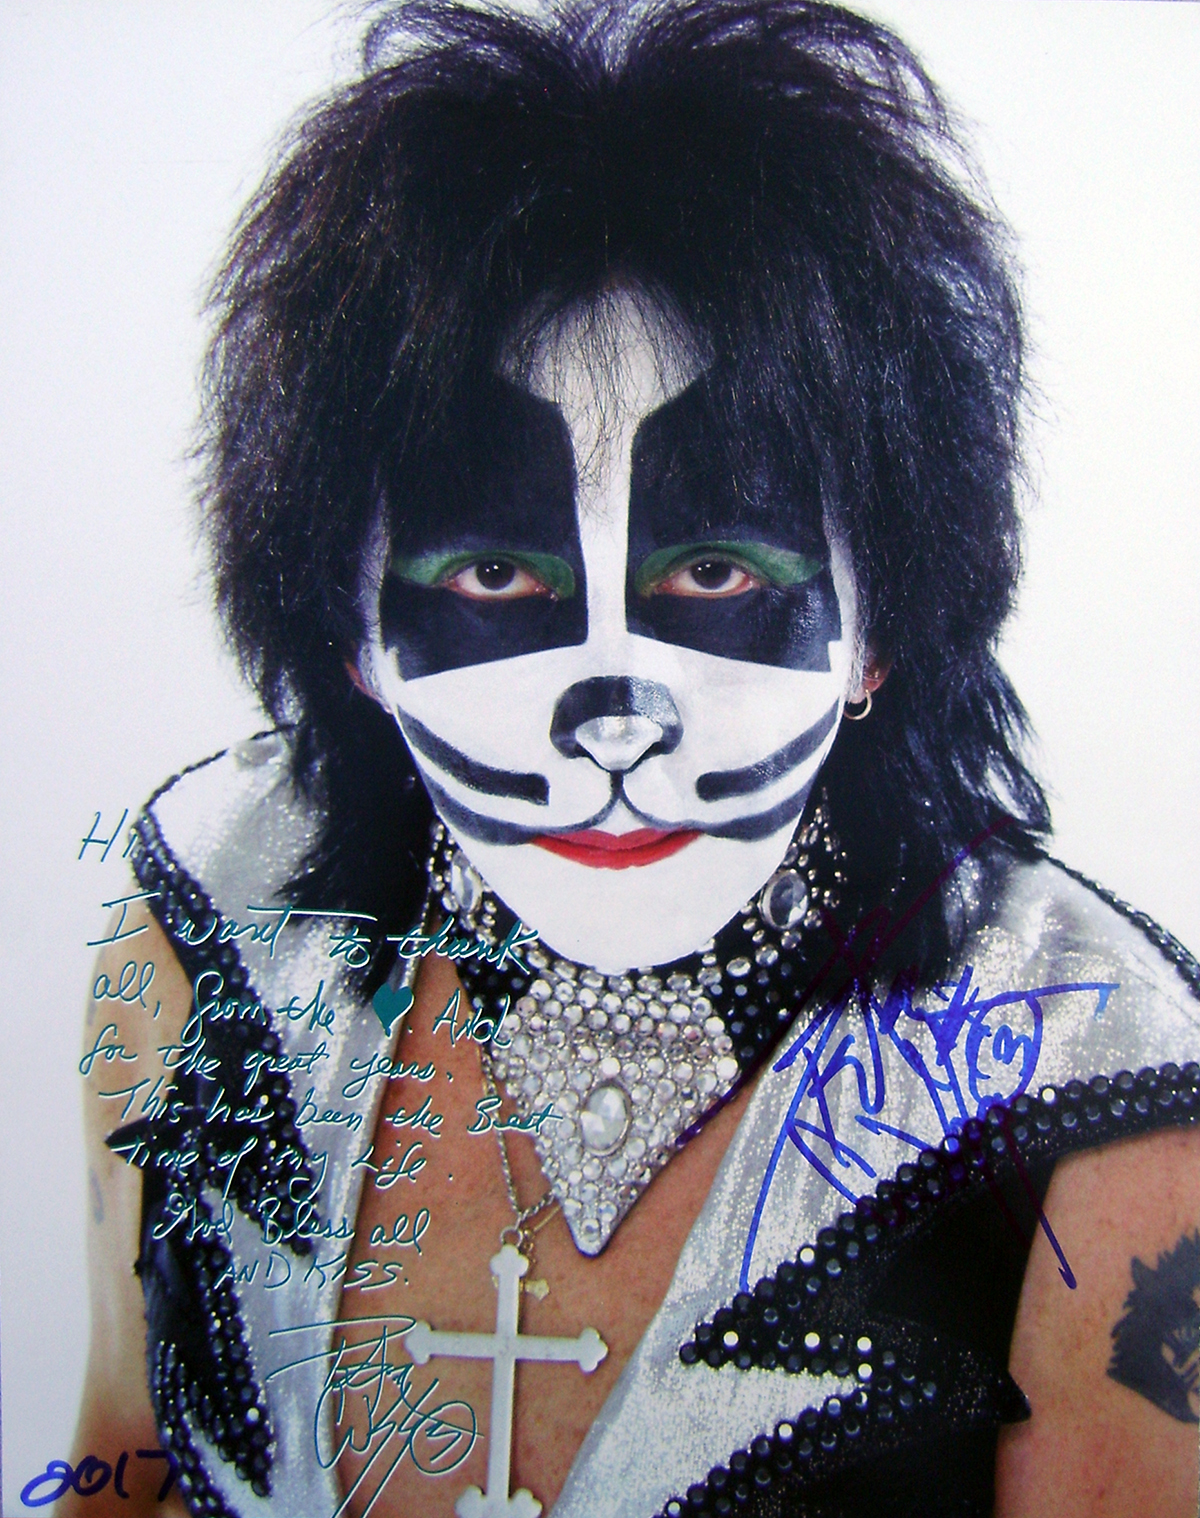 Photo - Peter Criss #2